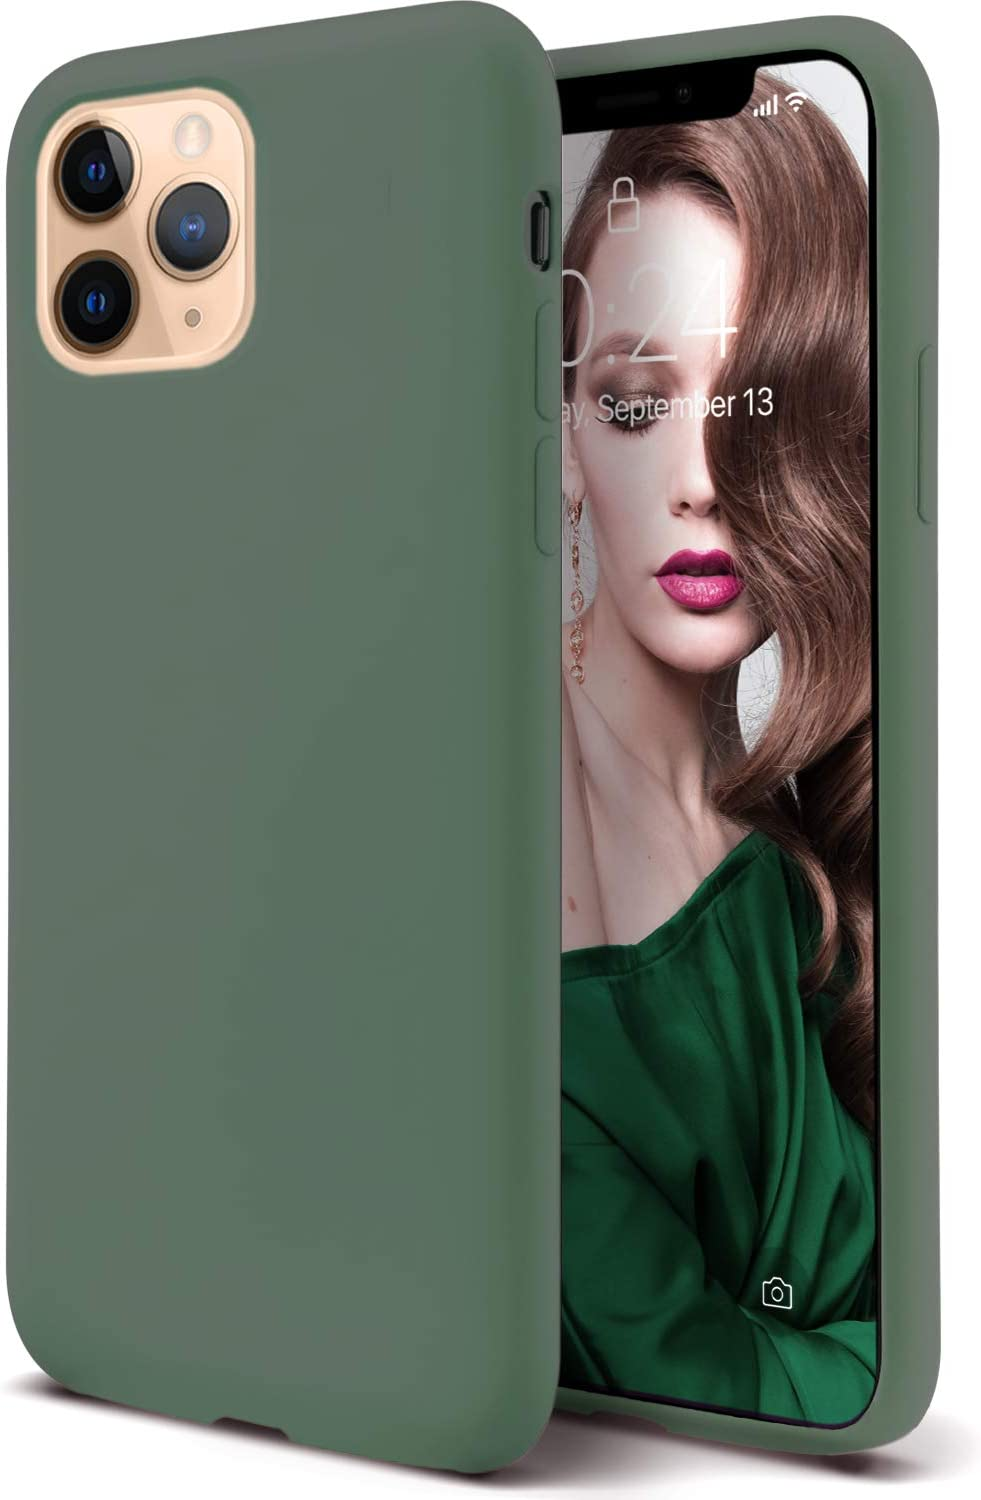 Coolwee Liquid Silicone Rubber iPhone 11 Pro Max Case Full Body Protection Shockproof Cover Drop Protection Cushion Gel Matte Women Girl Men Slim Protective Case for Apple iPhone 11 Pro Max Pine Green